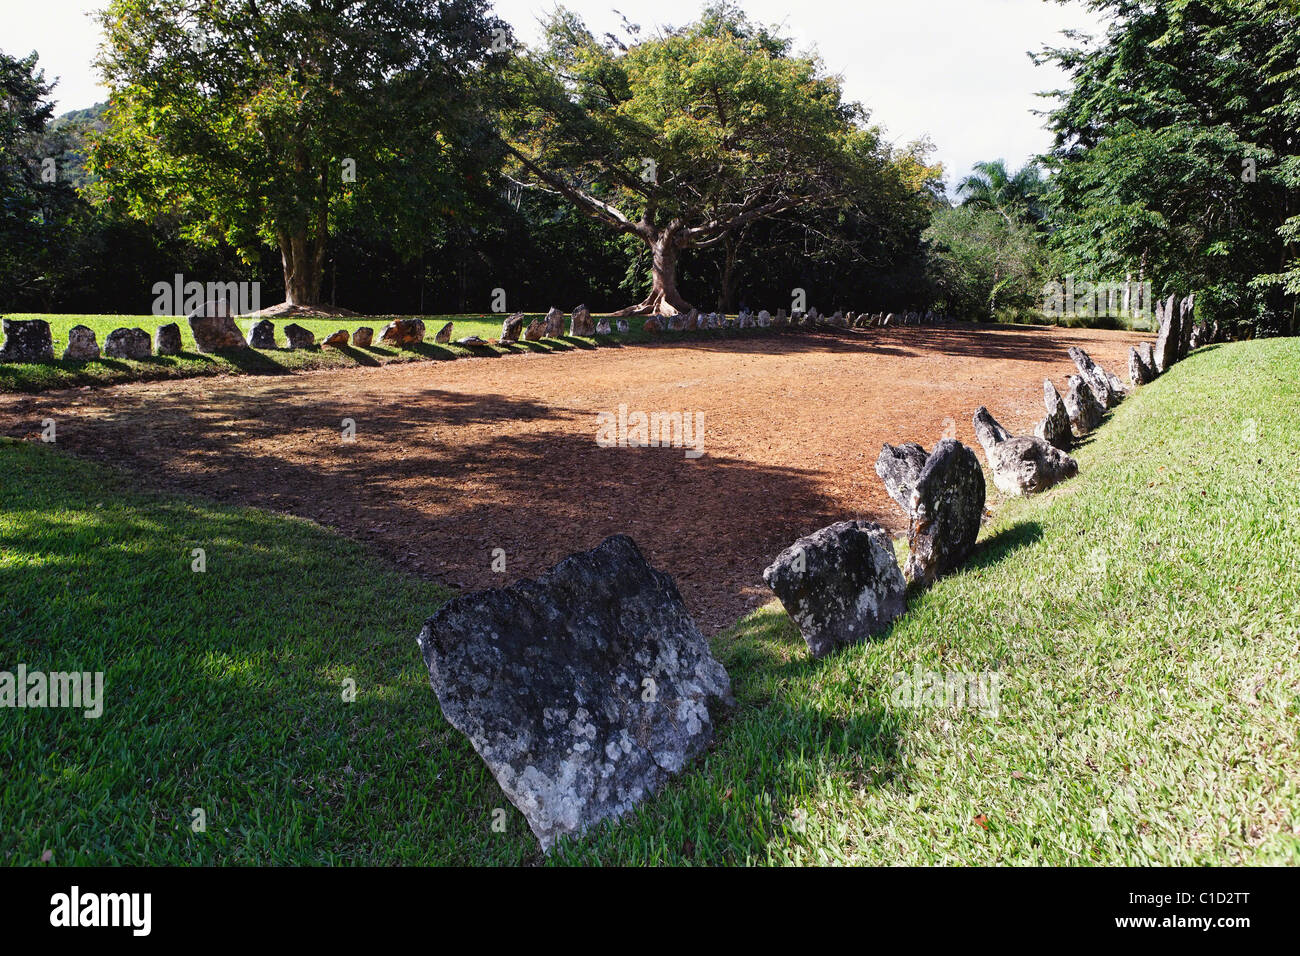 Caguana Ceremonial Ball Court, Utuado, Puerto Rico - Stock Image